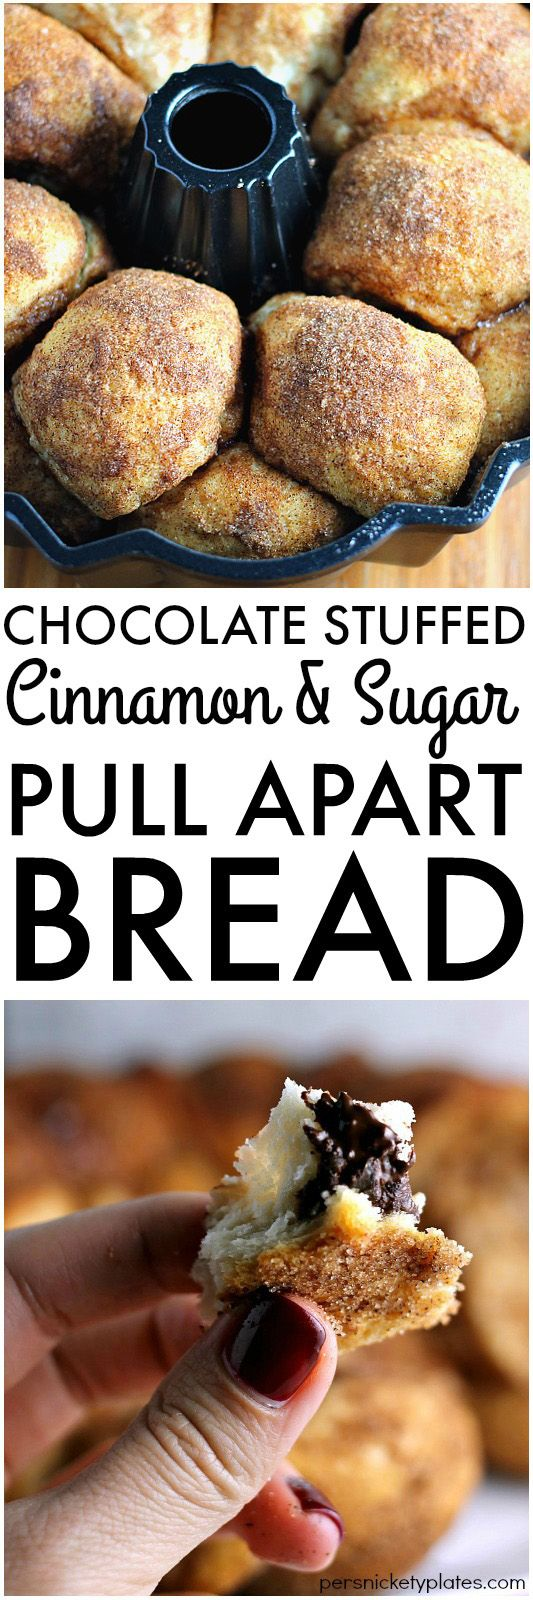 Chocolate Stuffed Cinnamon & Sugar Pull-Apart Bread - a long title for a simple & delicious recipe that only takes 5 ingredients and about 30 minutes to put together. | Persnickety Plates AD #WarmTraditions: